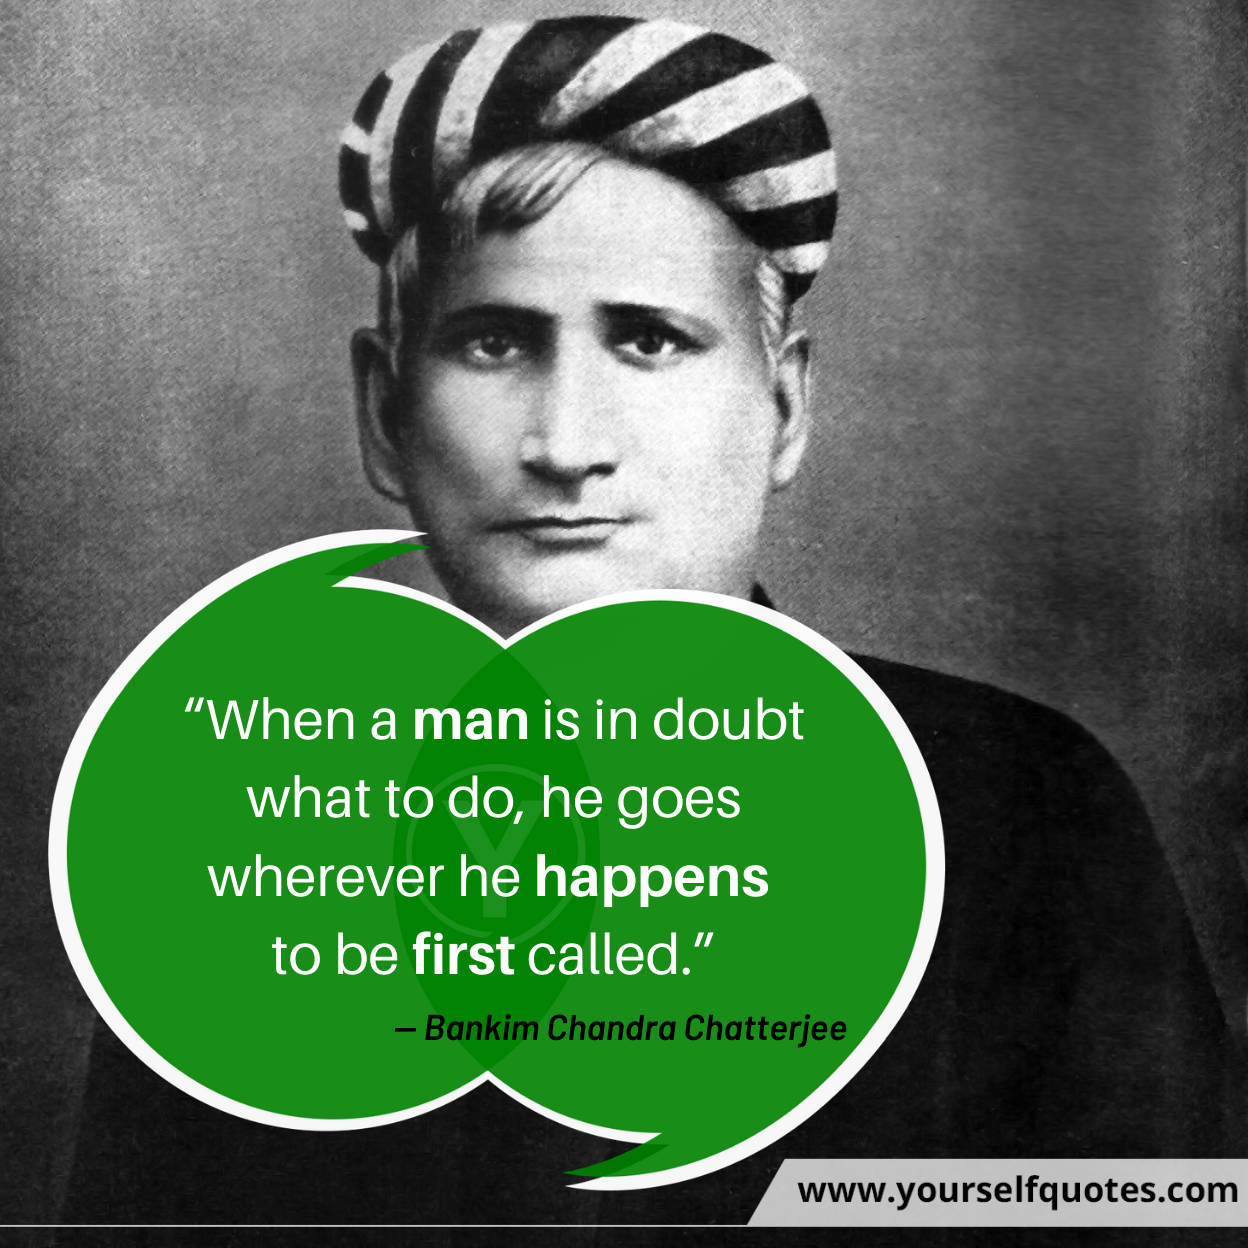 Bankim Chandra Chatterjee Quotes Images